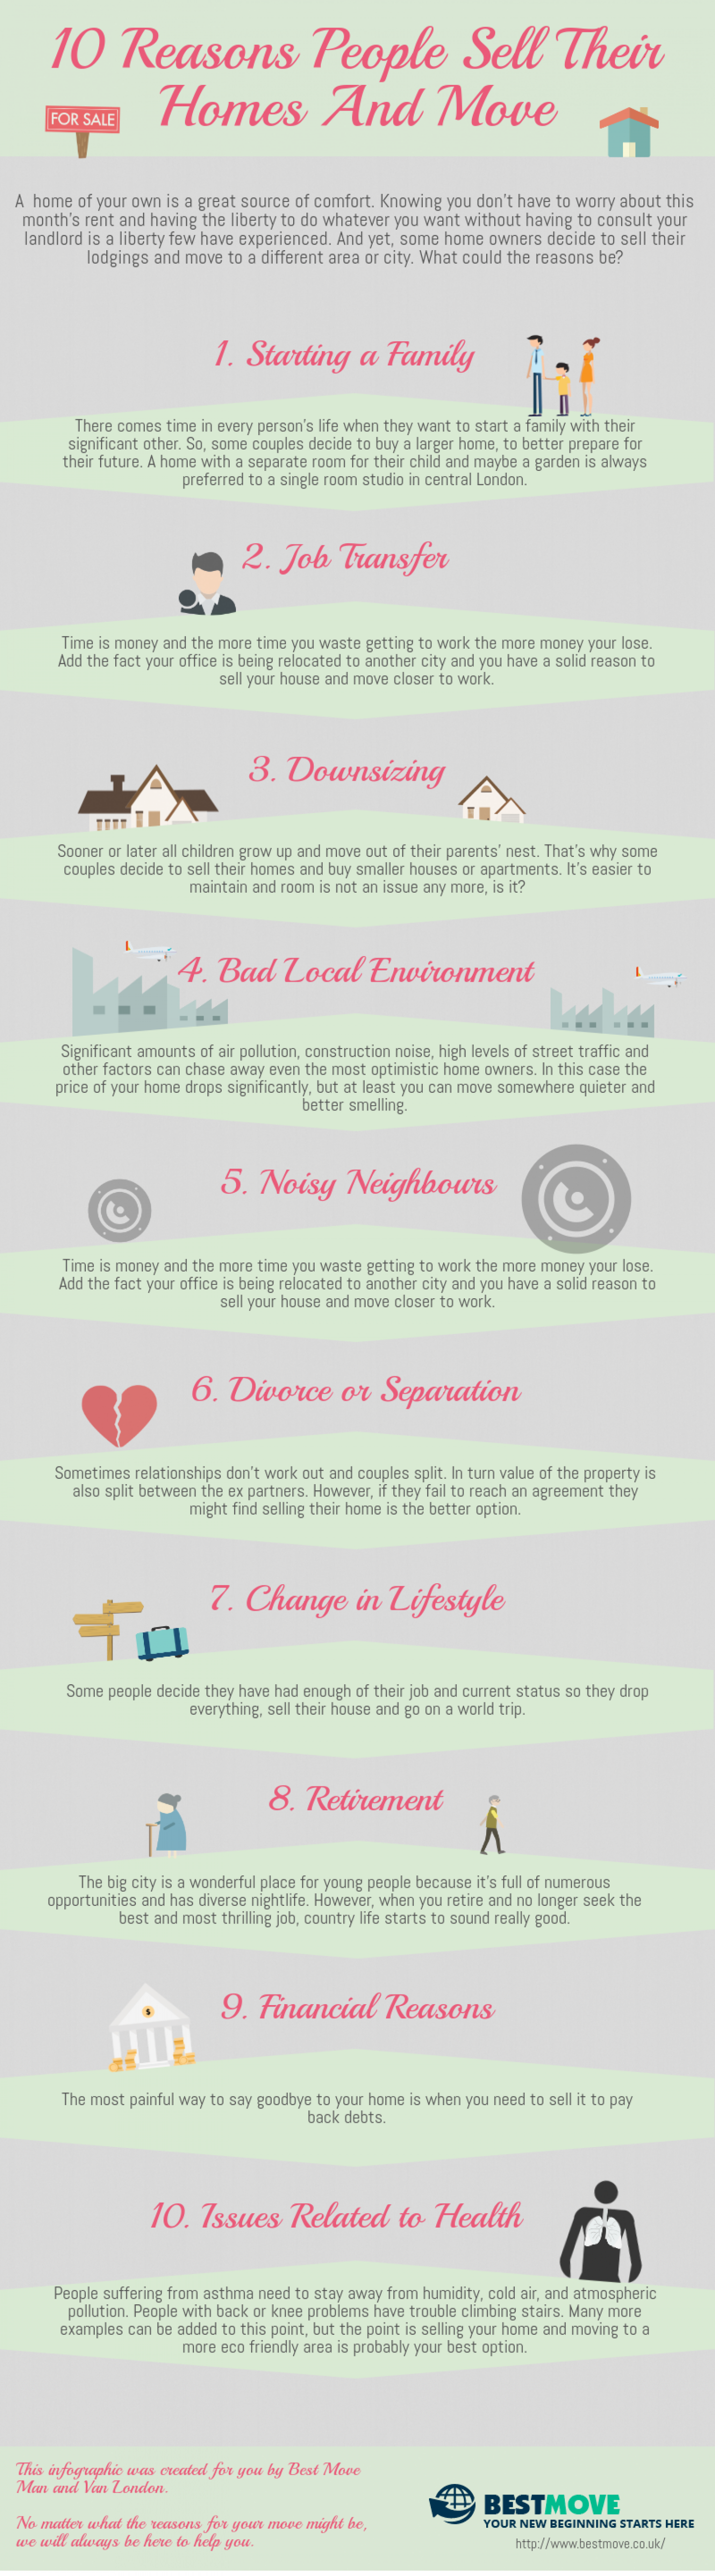 10 Reasons People Sell Their Homes Infographic